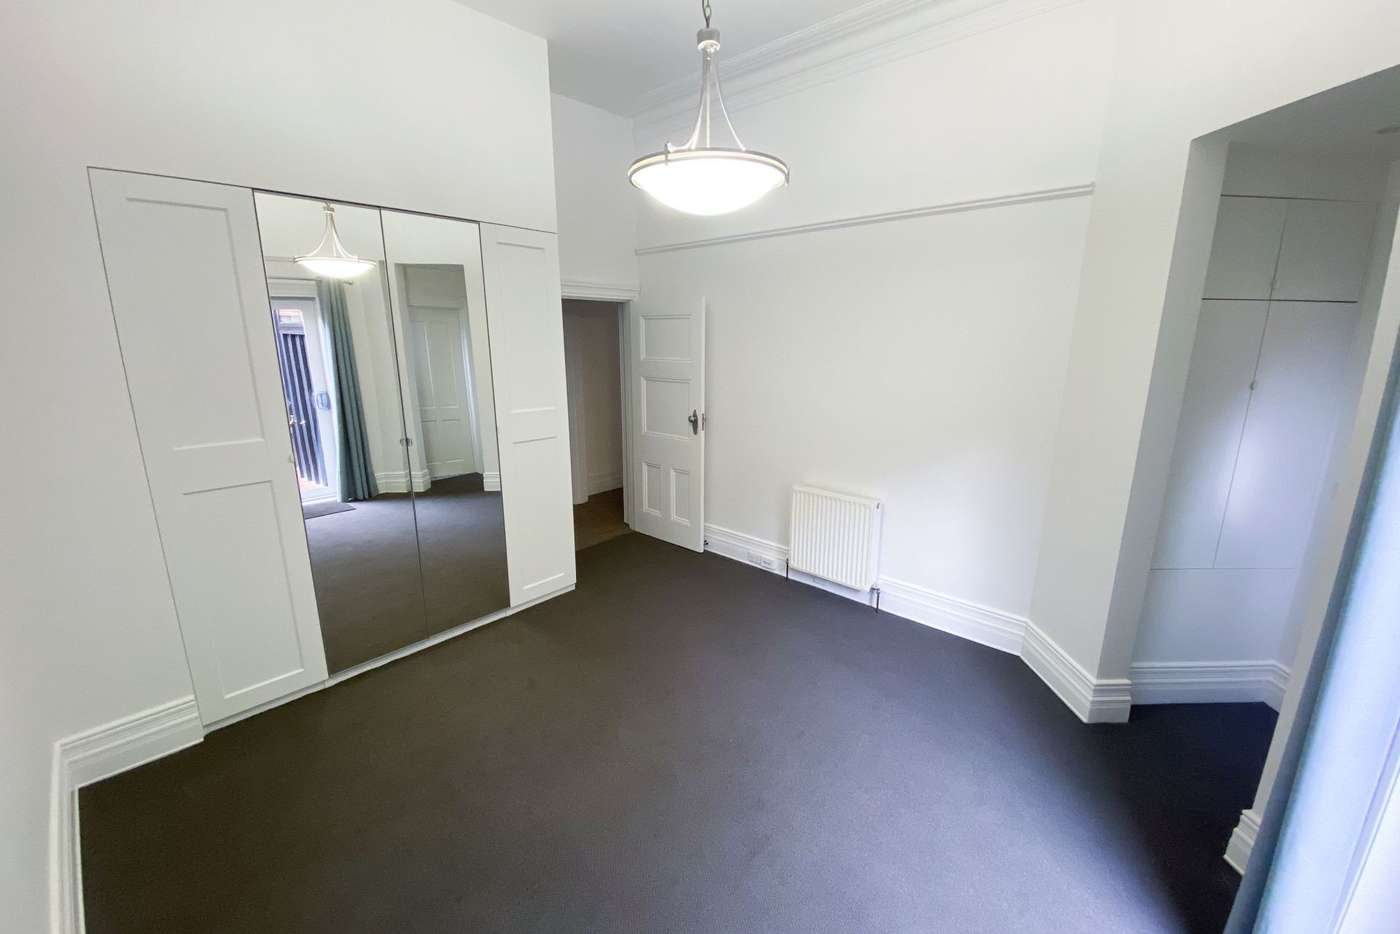 Sixth view of Homely house listing, 72 Octavia St, St Kilda VIC 3182